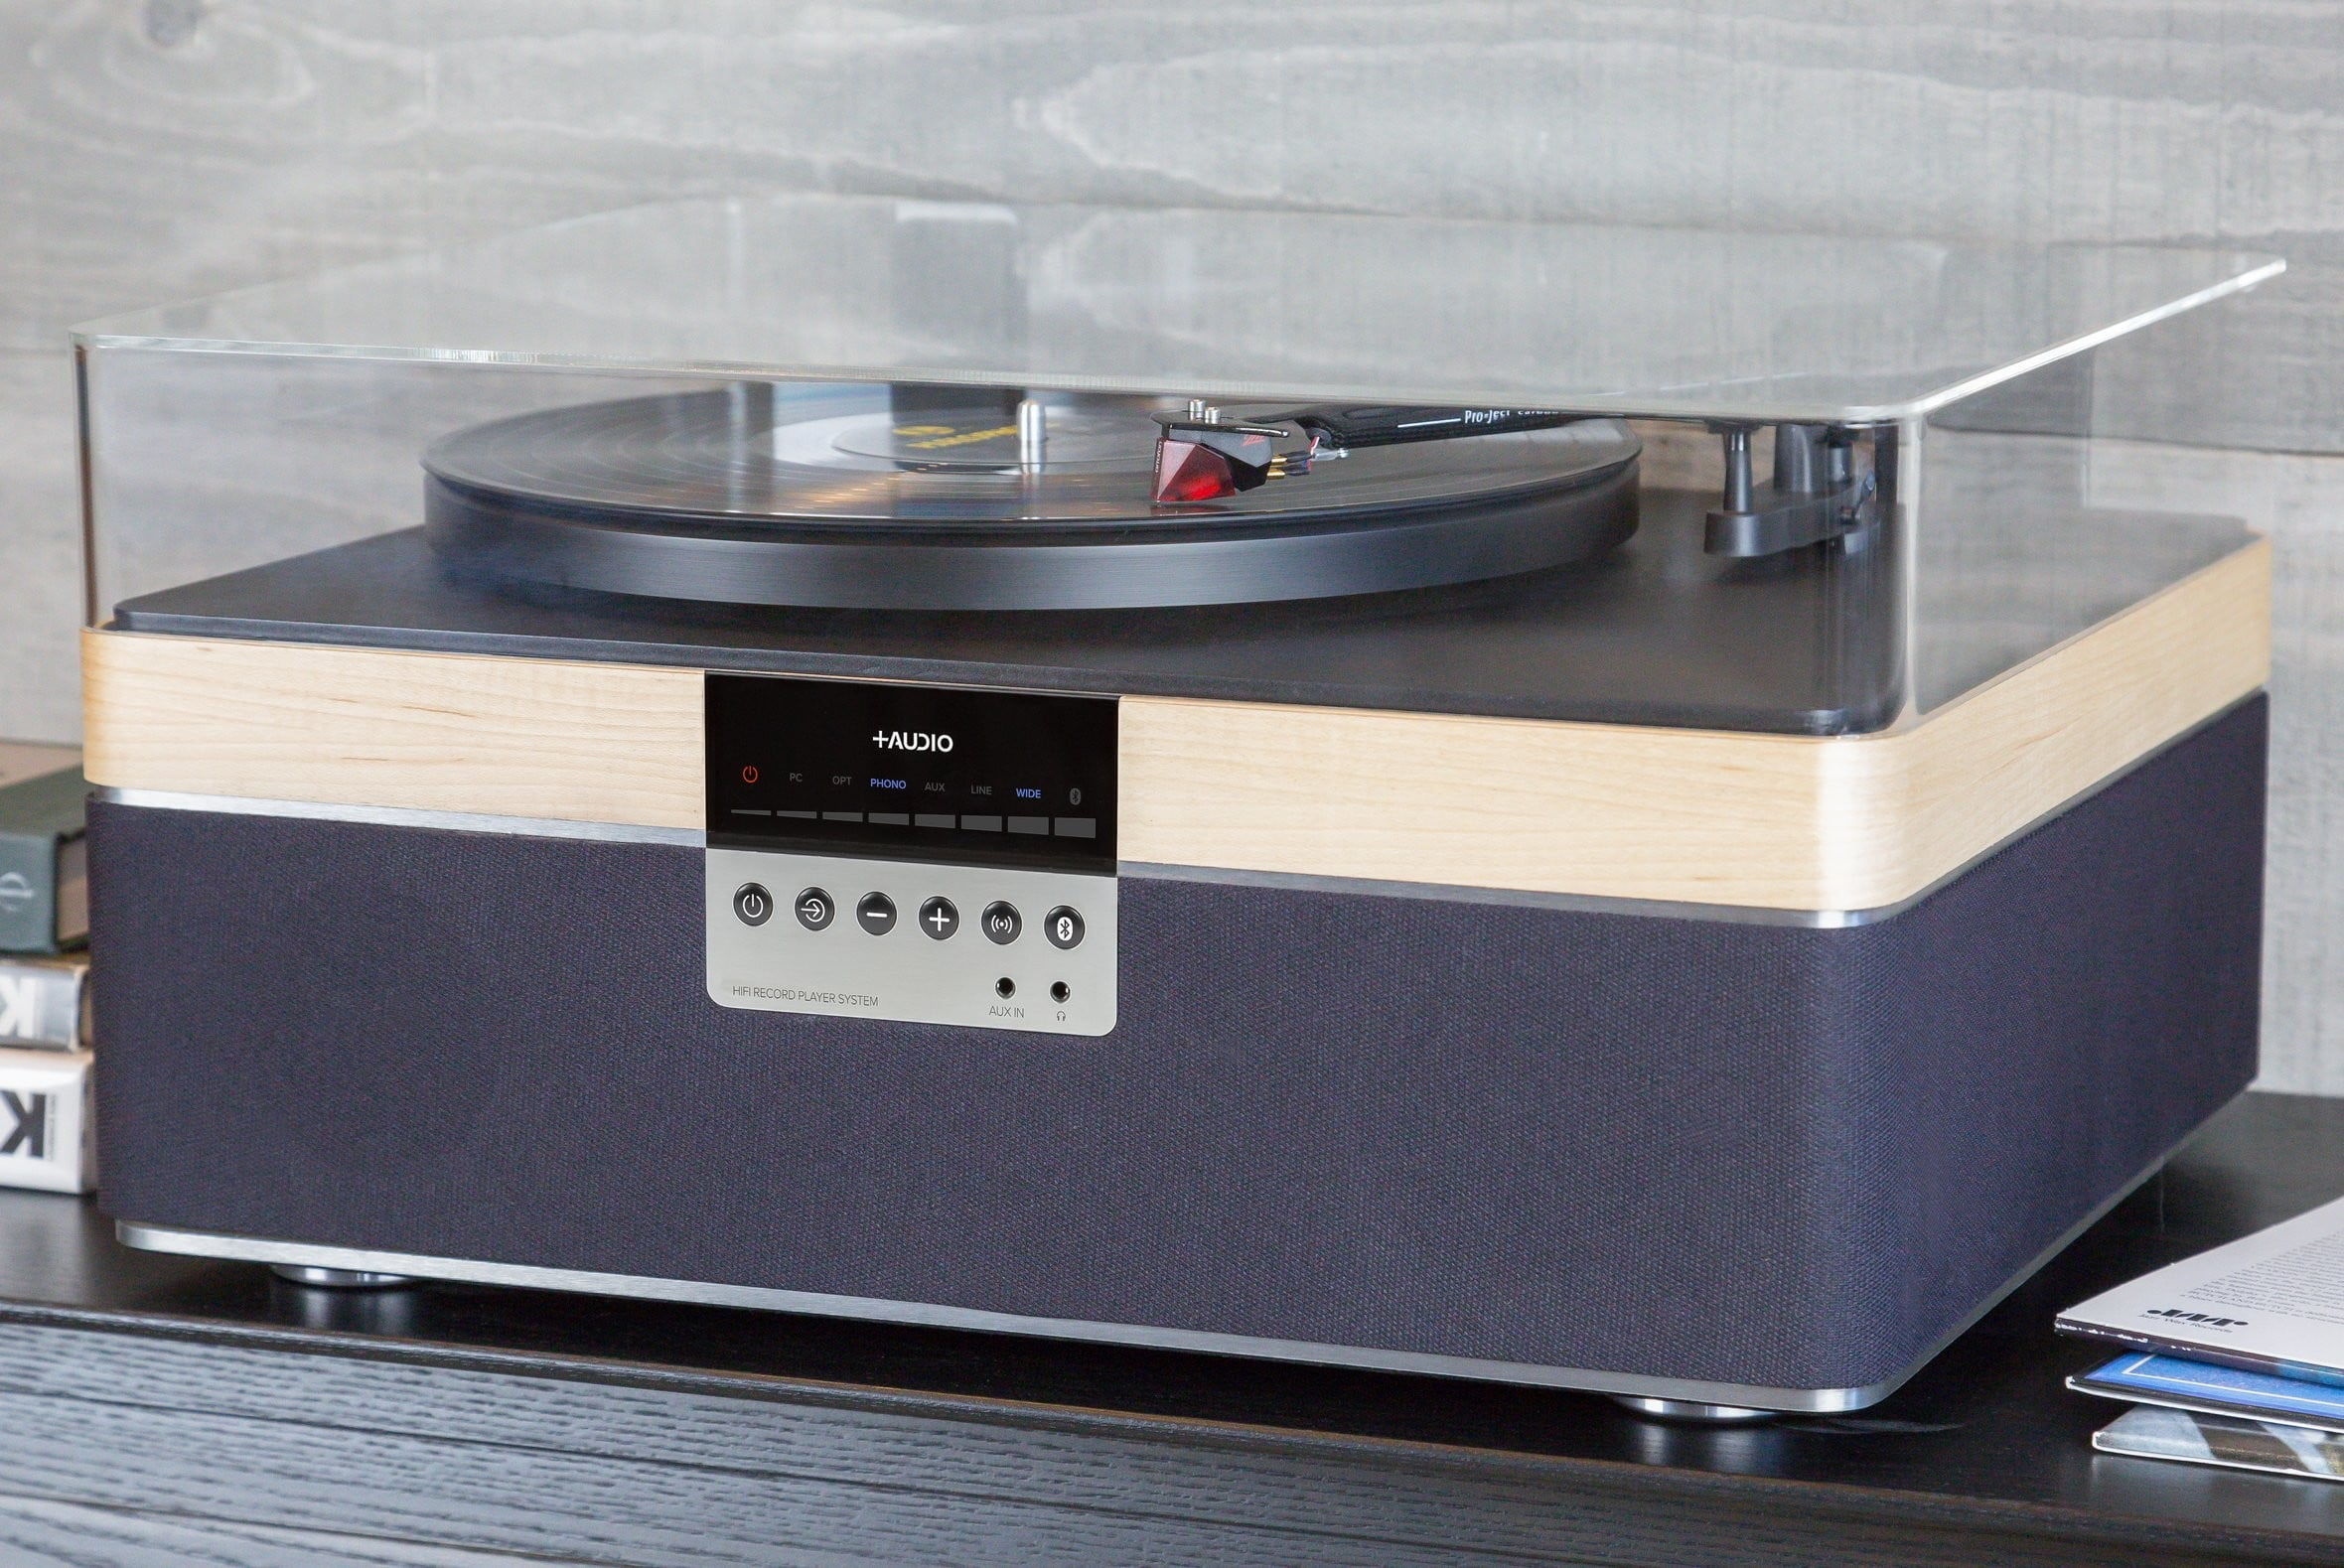 plusaudio therecord player turntable the record maple lifestyle 1180x 2x